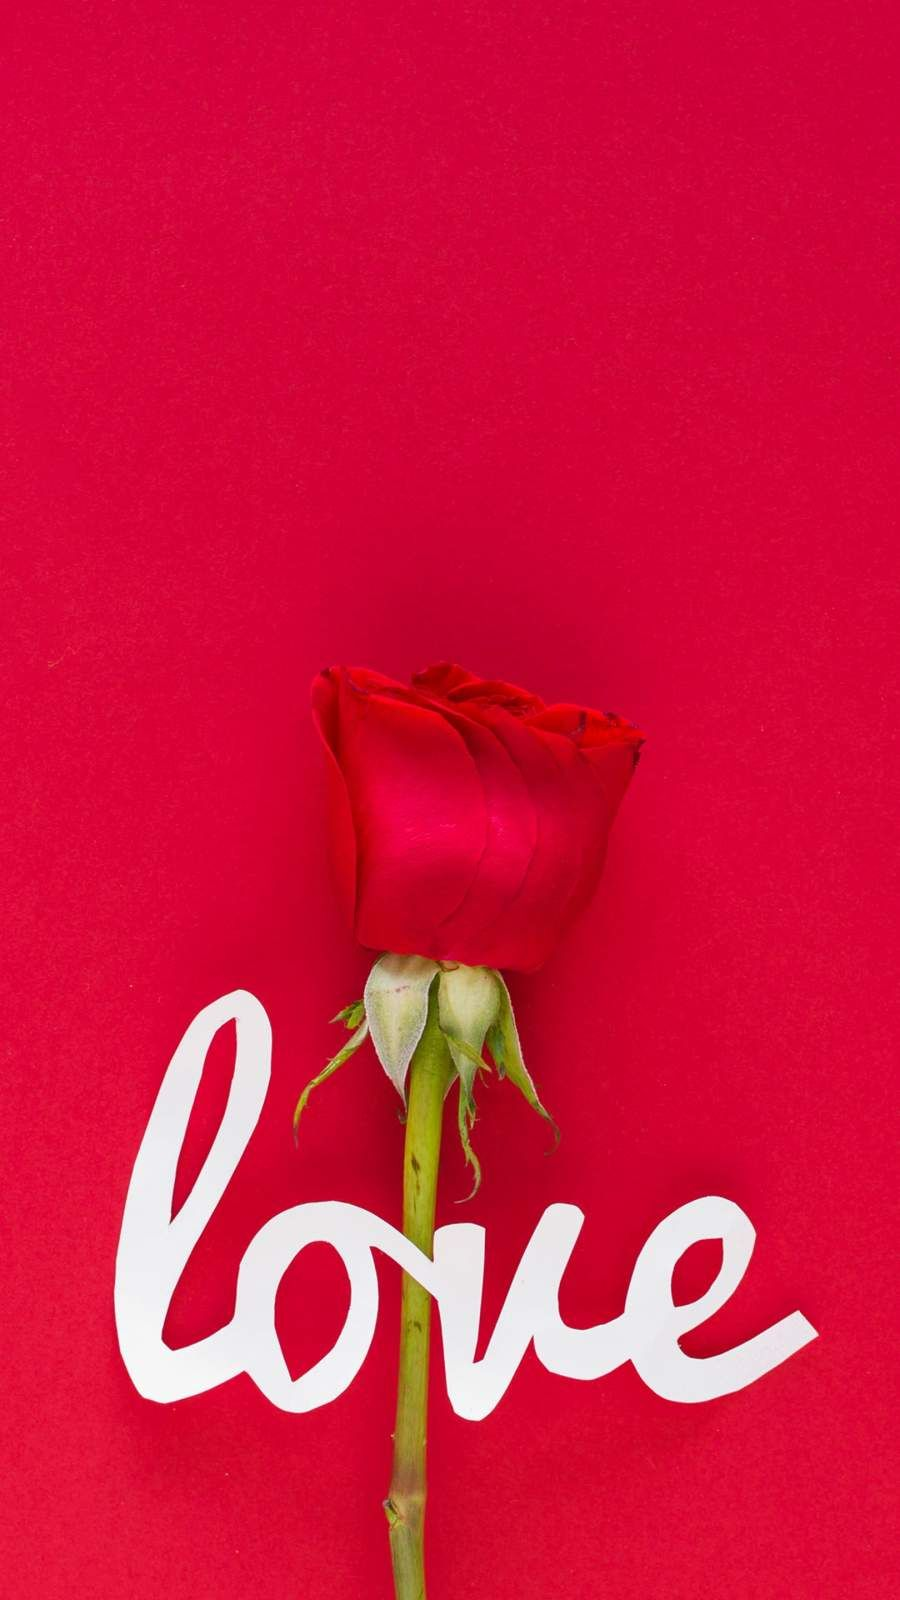 Tap And Get The Free App Nature Beautiful Roses Red Passion Cool Blooming Flowers Romantic Red Roses Wallpaper Rose Wallpaper Beautiful Roses